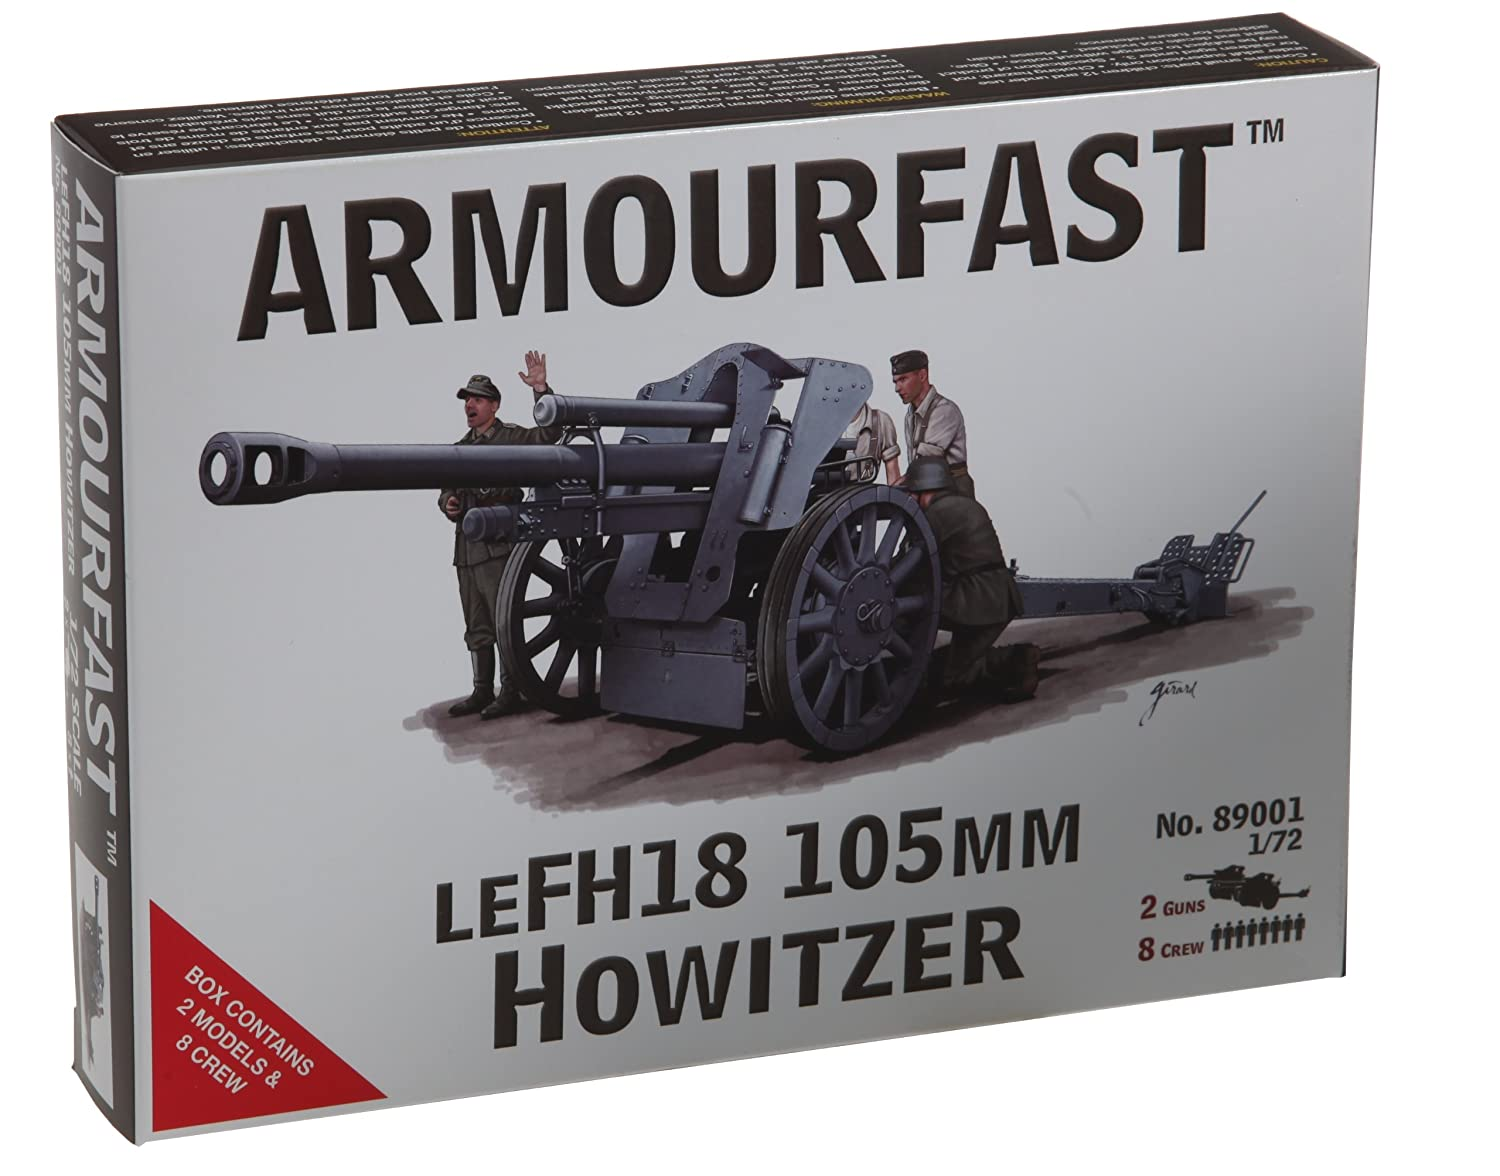 'Our Fast 89001leFH 18howitzer 105mm Armourfast ARF-89001